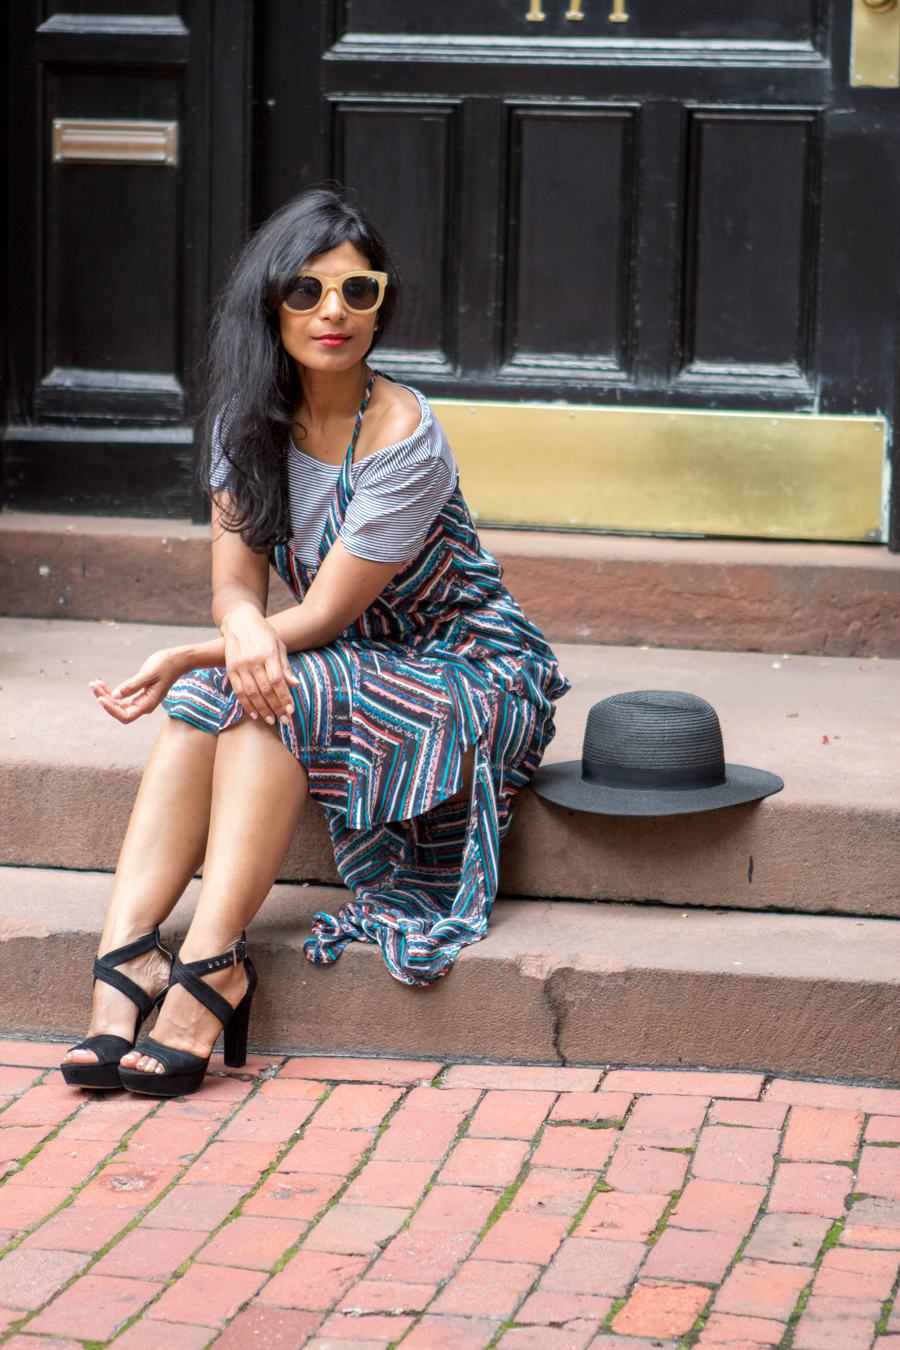 fashion over 40, petite fashion, casual style, weekend outfit, weekend style, maxi dress, brunch style, red lips, retro sunglasses, stripes, petite style, personal stylist,